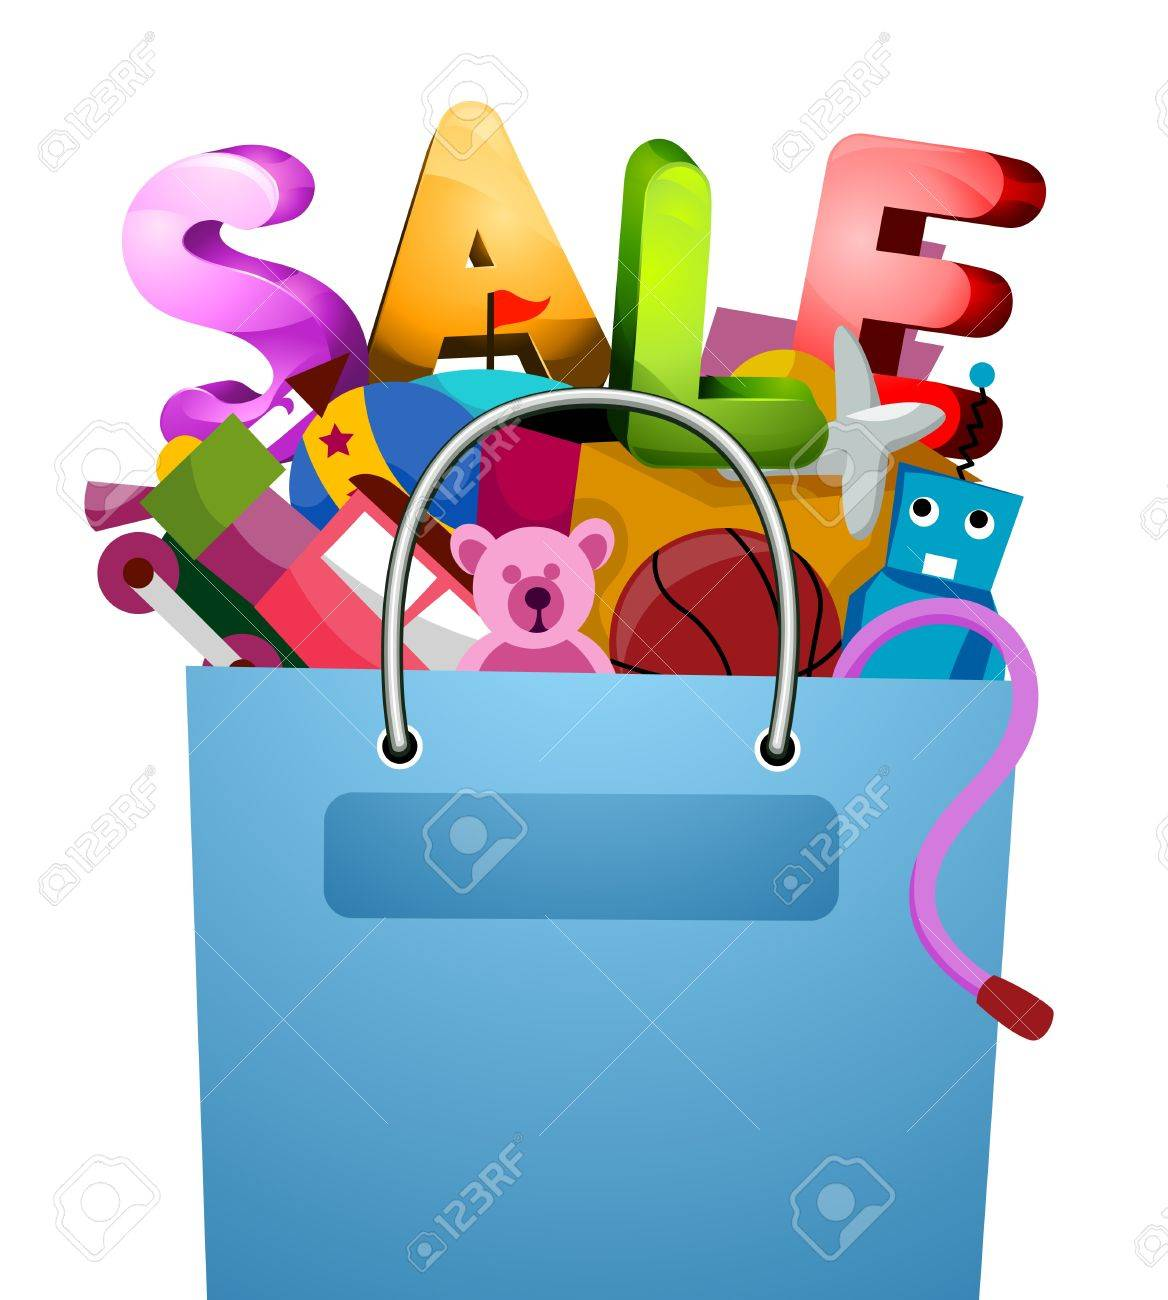 Toys Sale Flyer Design Photo Picture And Royalty Free Image – Sale Flyer Design